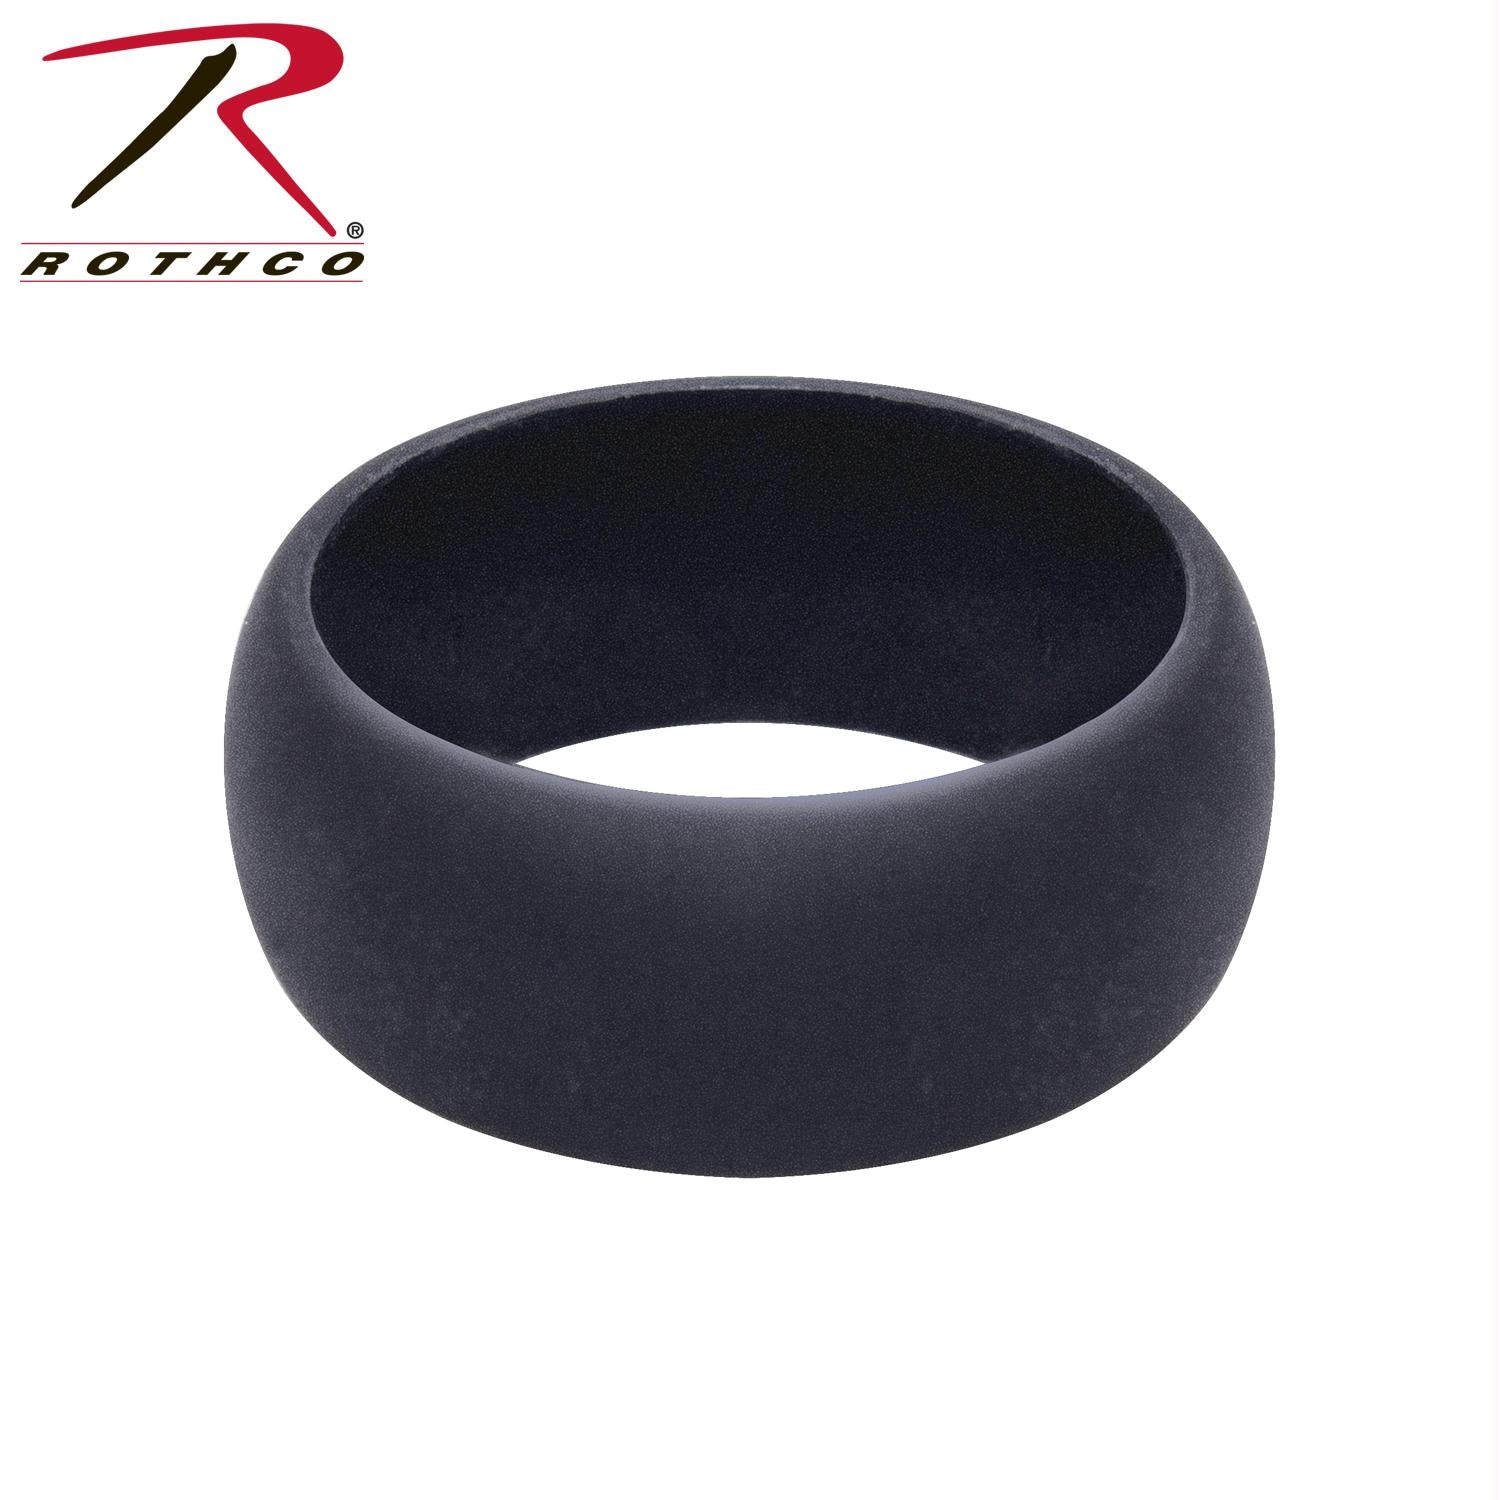 Rothco Silicone Ring - Ring Size 13 (2 3/4 inches)